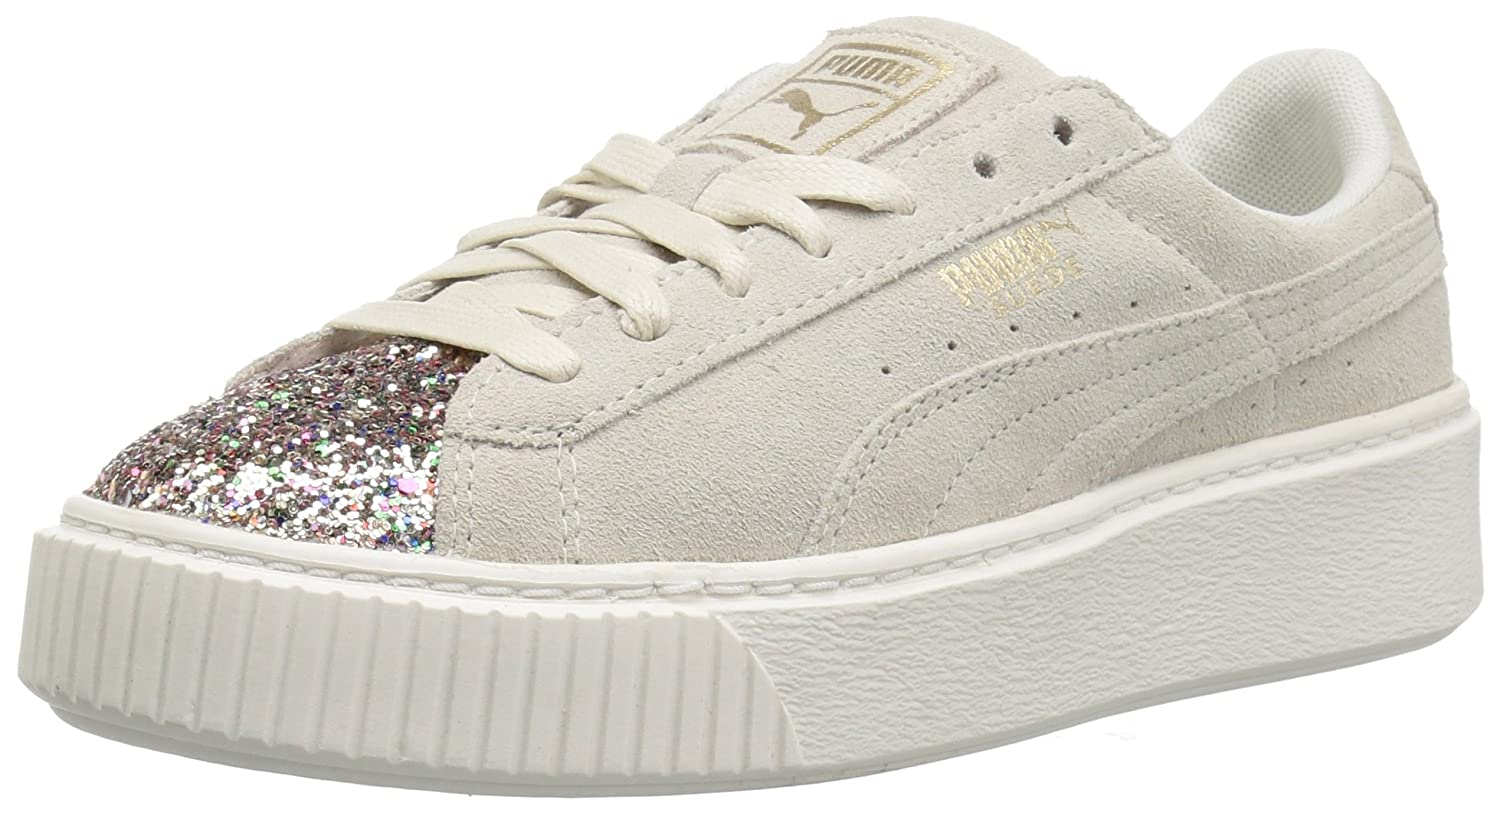 PUMA Women's Suede Crushed Gem Platform B06XWKJ1F8 7 B(M) US|Marshmallow-metallic Gold